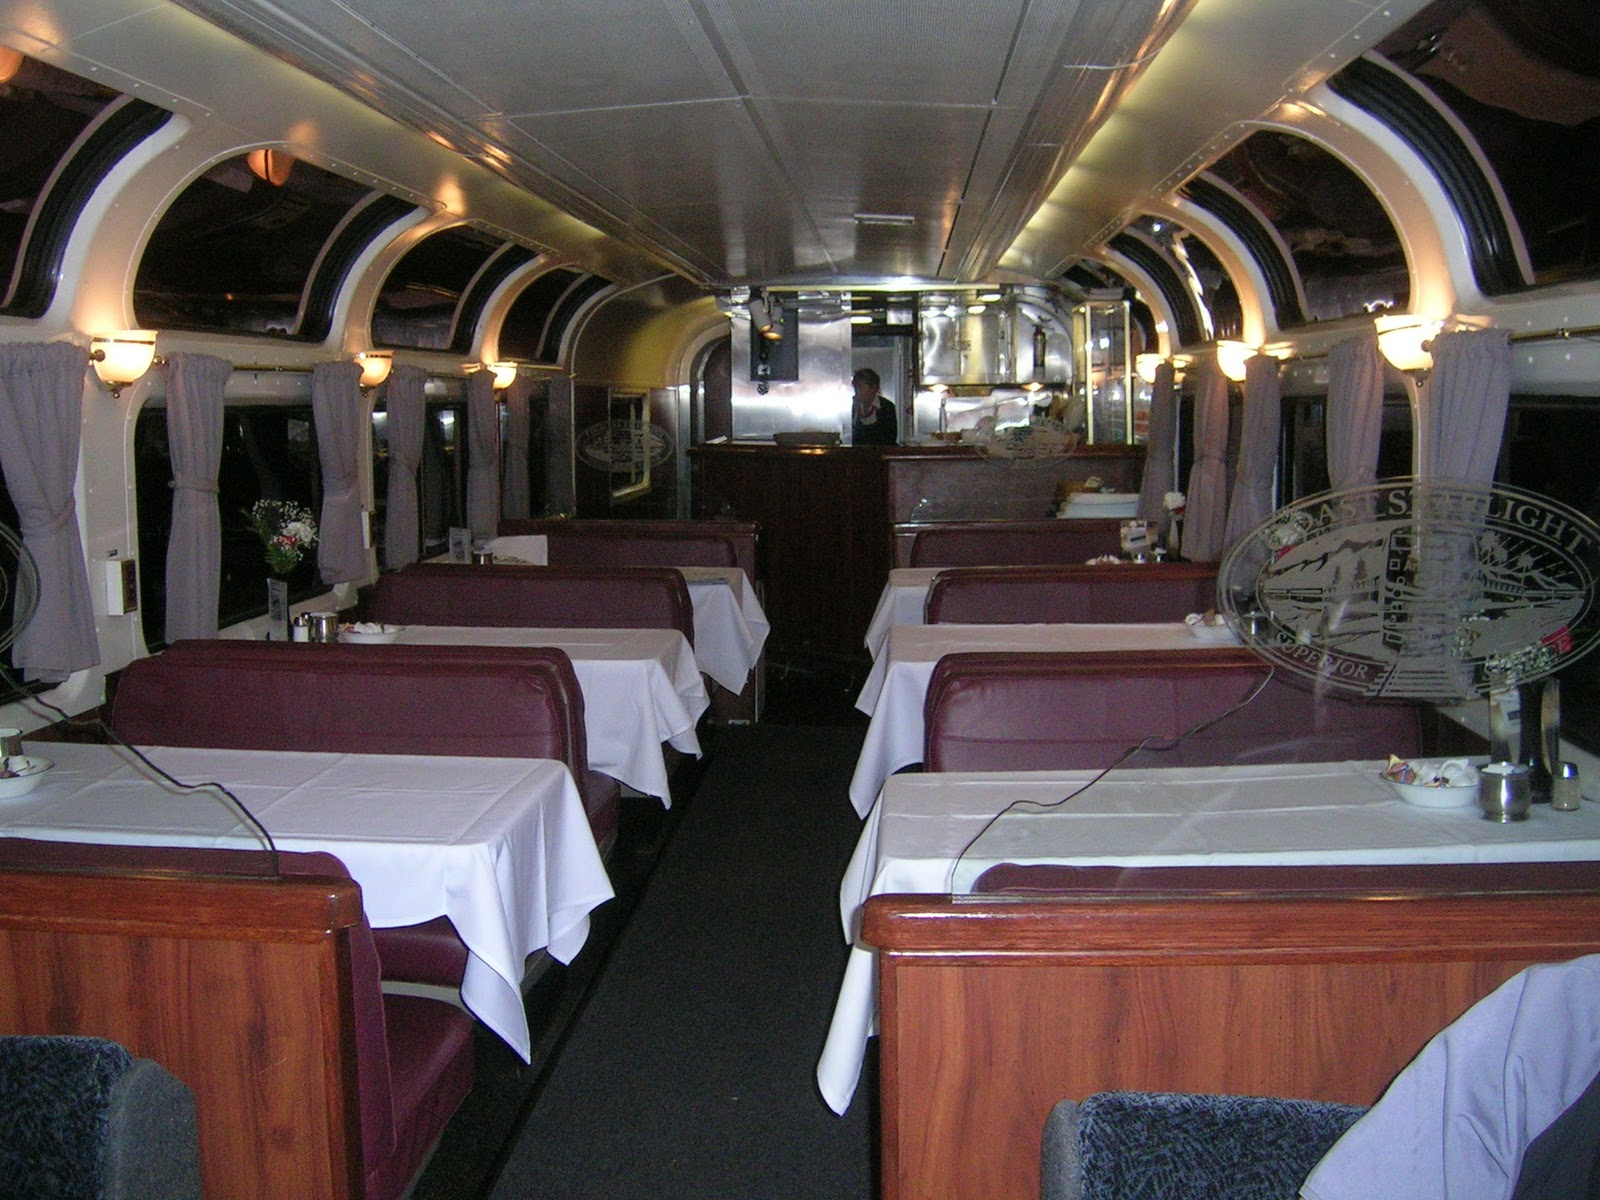 Superliner Family Bedroom